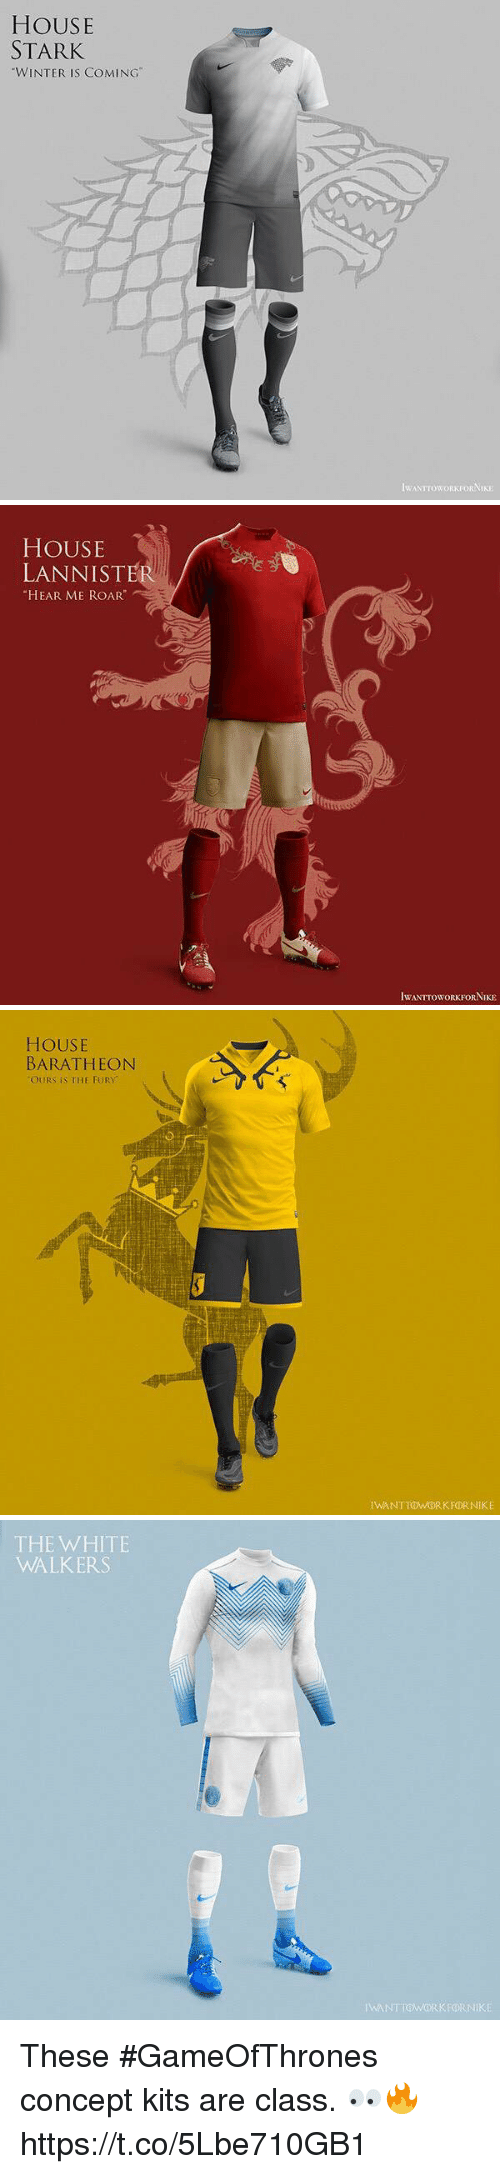 """Soccer, Winter, and House: HOUSE  STARK  """"WINTER IS COMING""""  IWANTTOWORKFORNIKE   HOUSE  LANNISTER  HEAR ME ROAR  IWANTTOWORKFORNIKE   HOUSE  BARATHEON  OURS IS THE FURY  IWANTTOWORKFORNIKE   THE WHITE  WALKERS  IWANTTOWORKFORNIKE These #GameOfThrones concept kits are class. 👀🔥 https://t.co/5Lbe710GB1"""